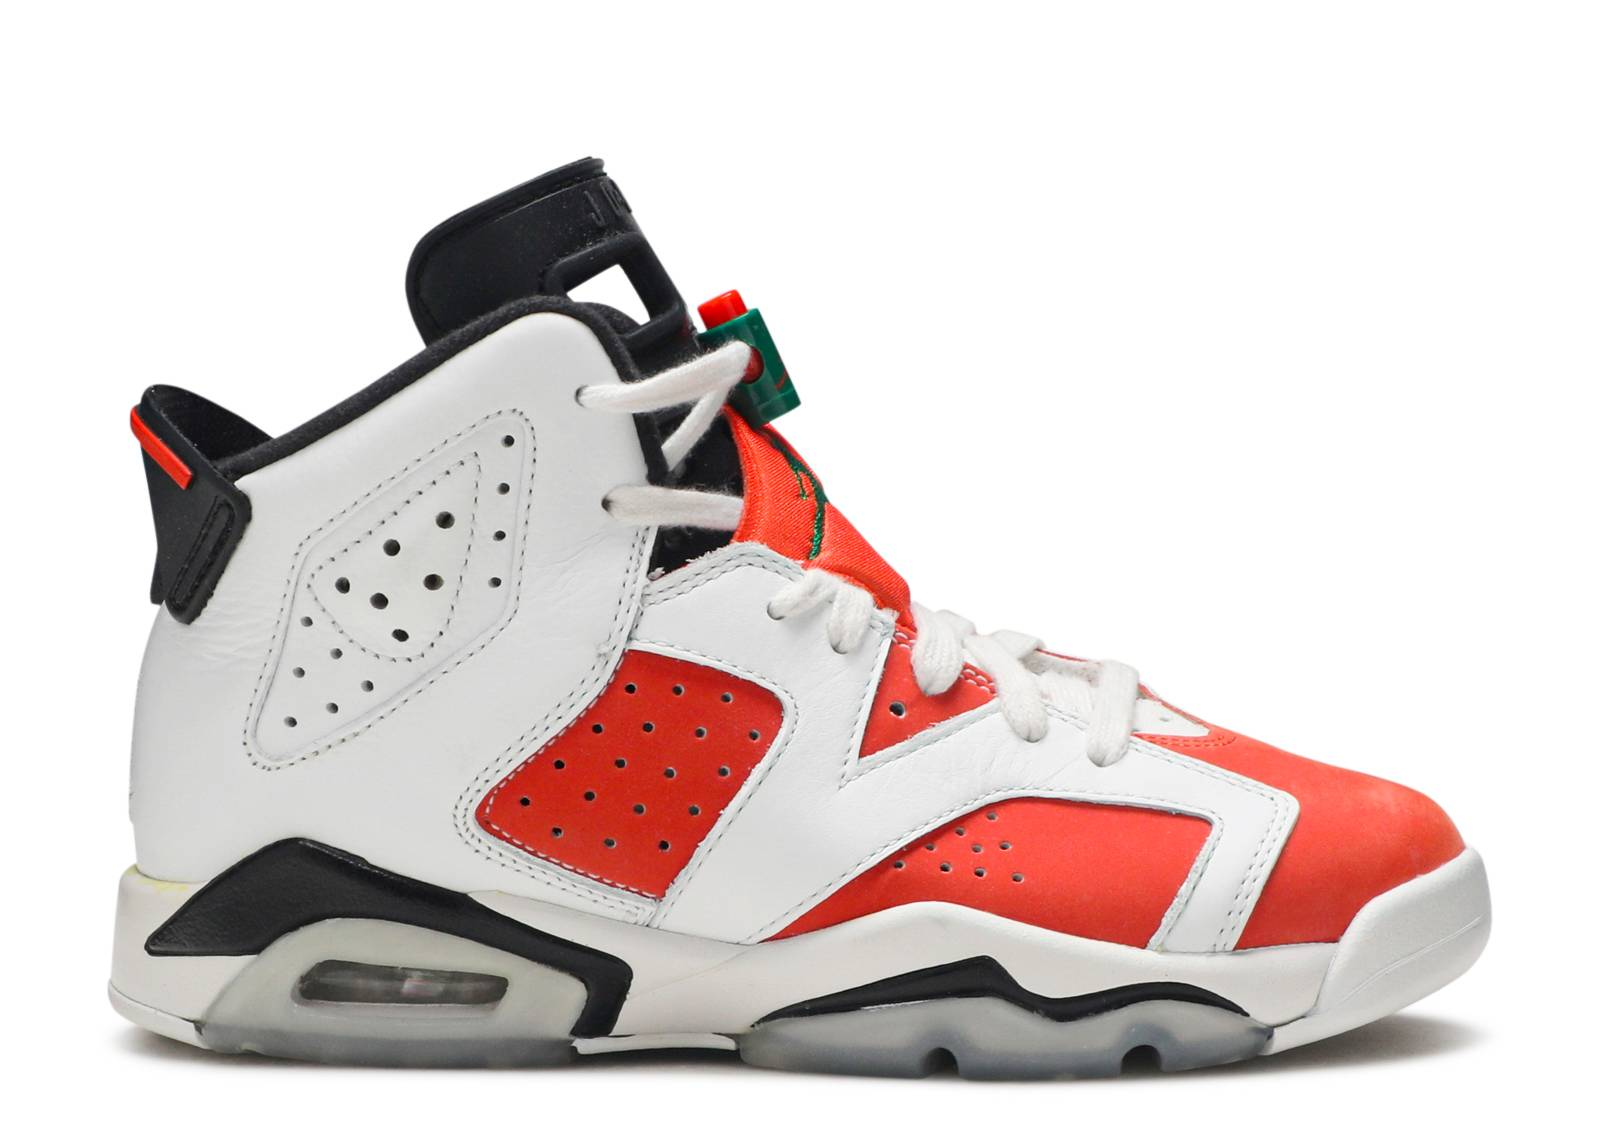 air jordan 6 retro bg summit white\/team orange-black blanc sommet\/equipe orange